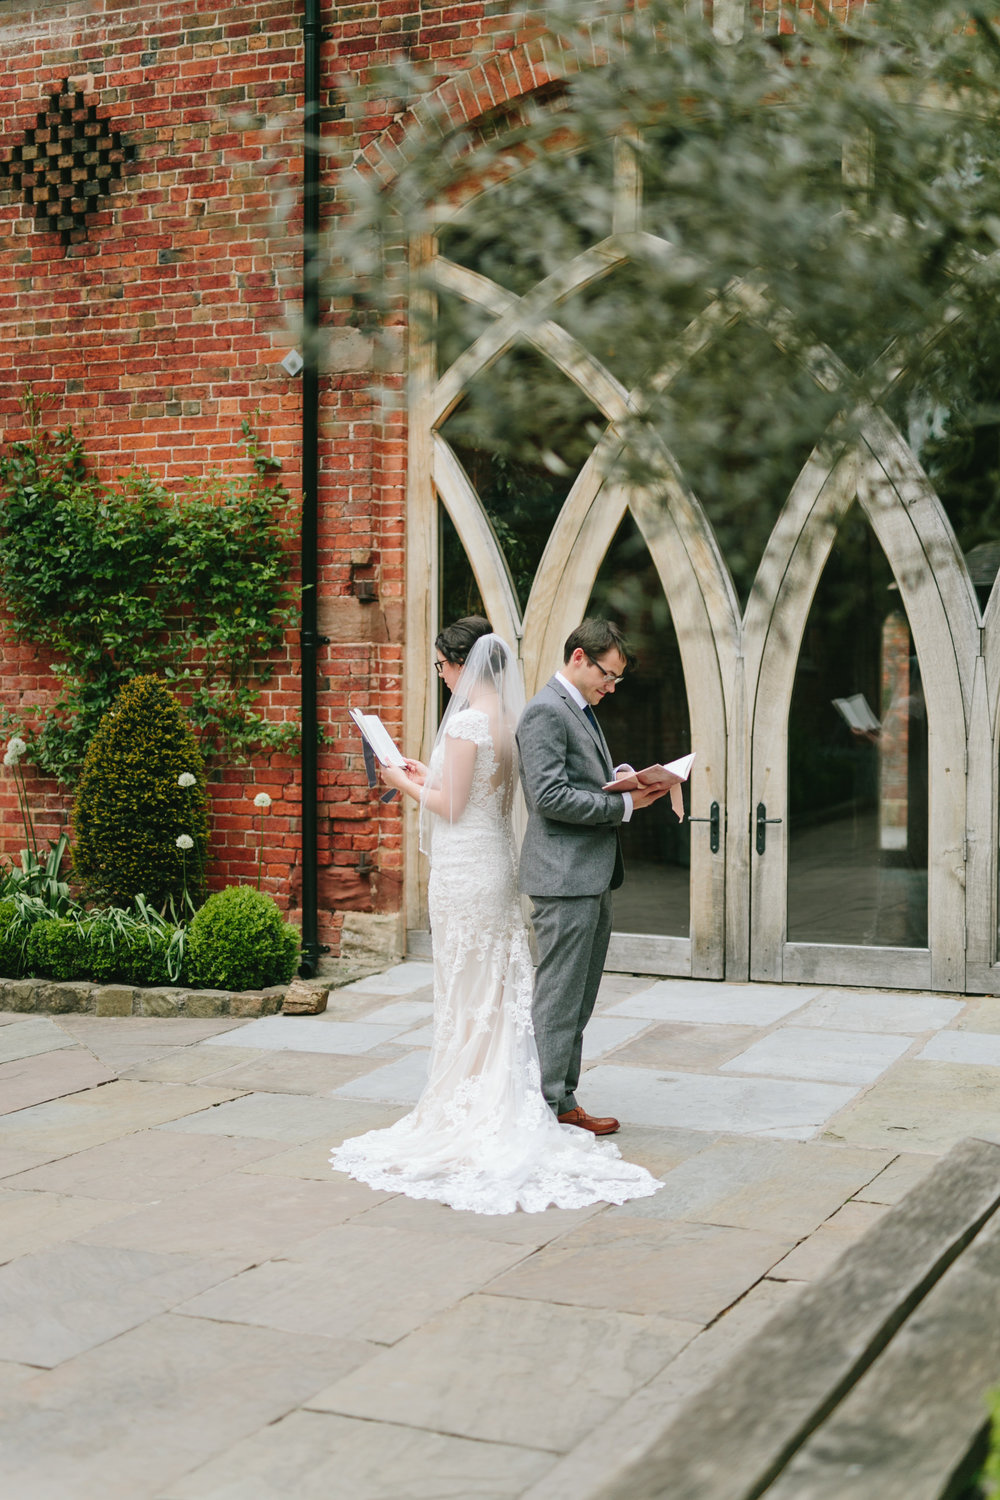 How to Create a Memorable First Look